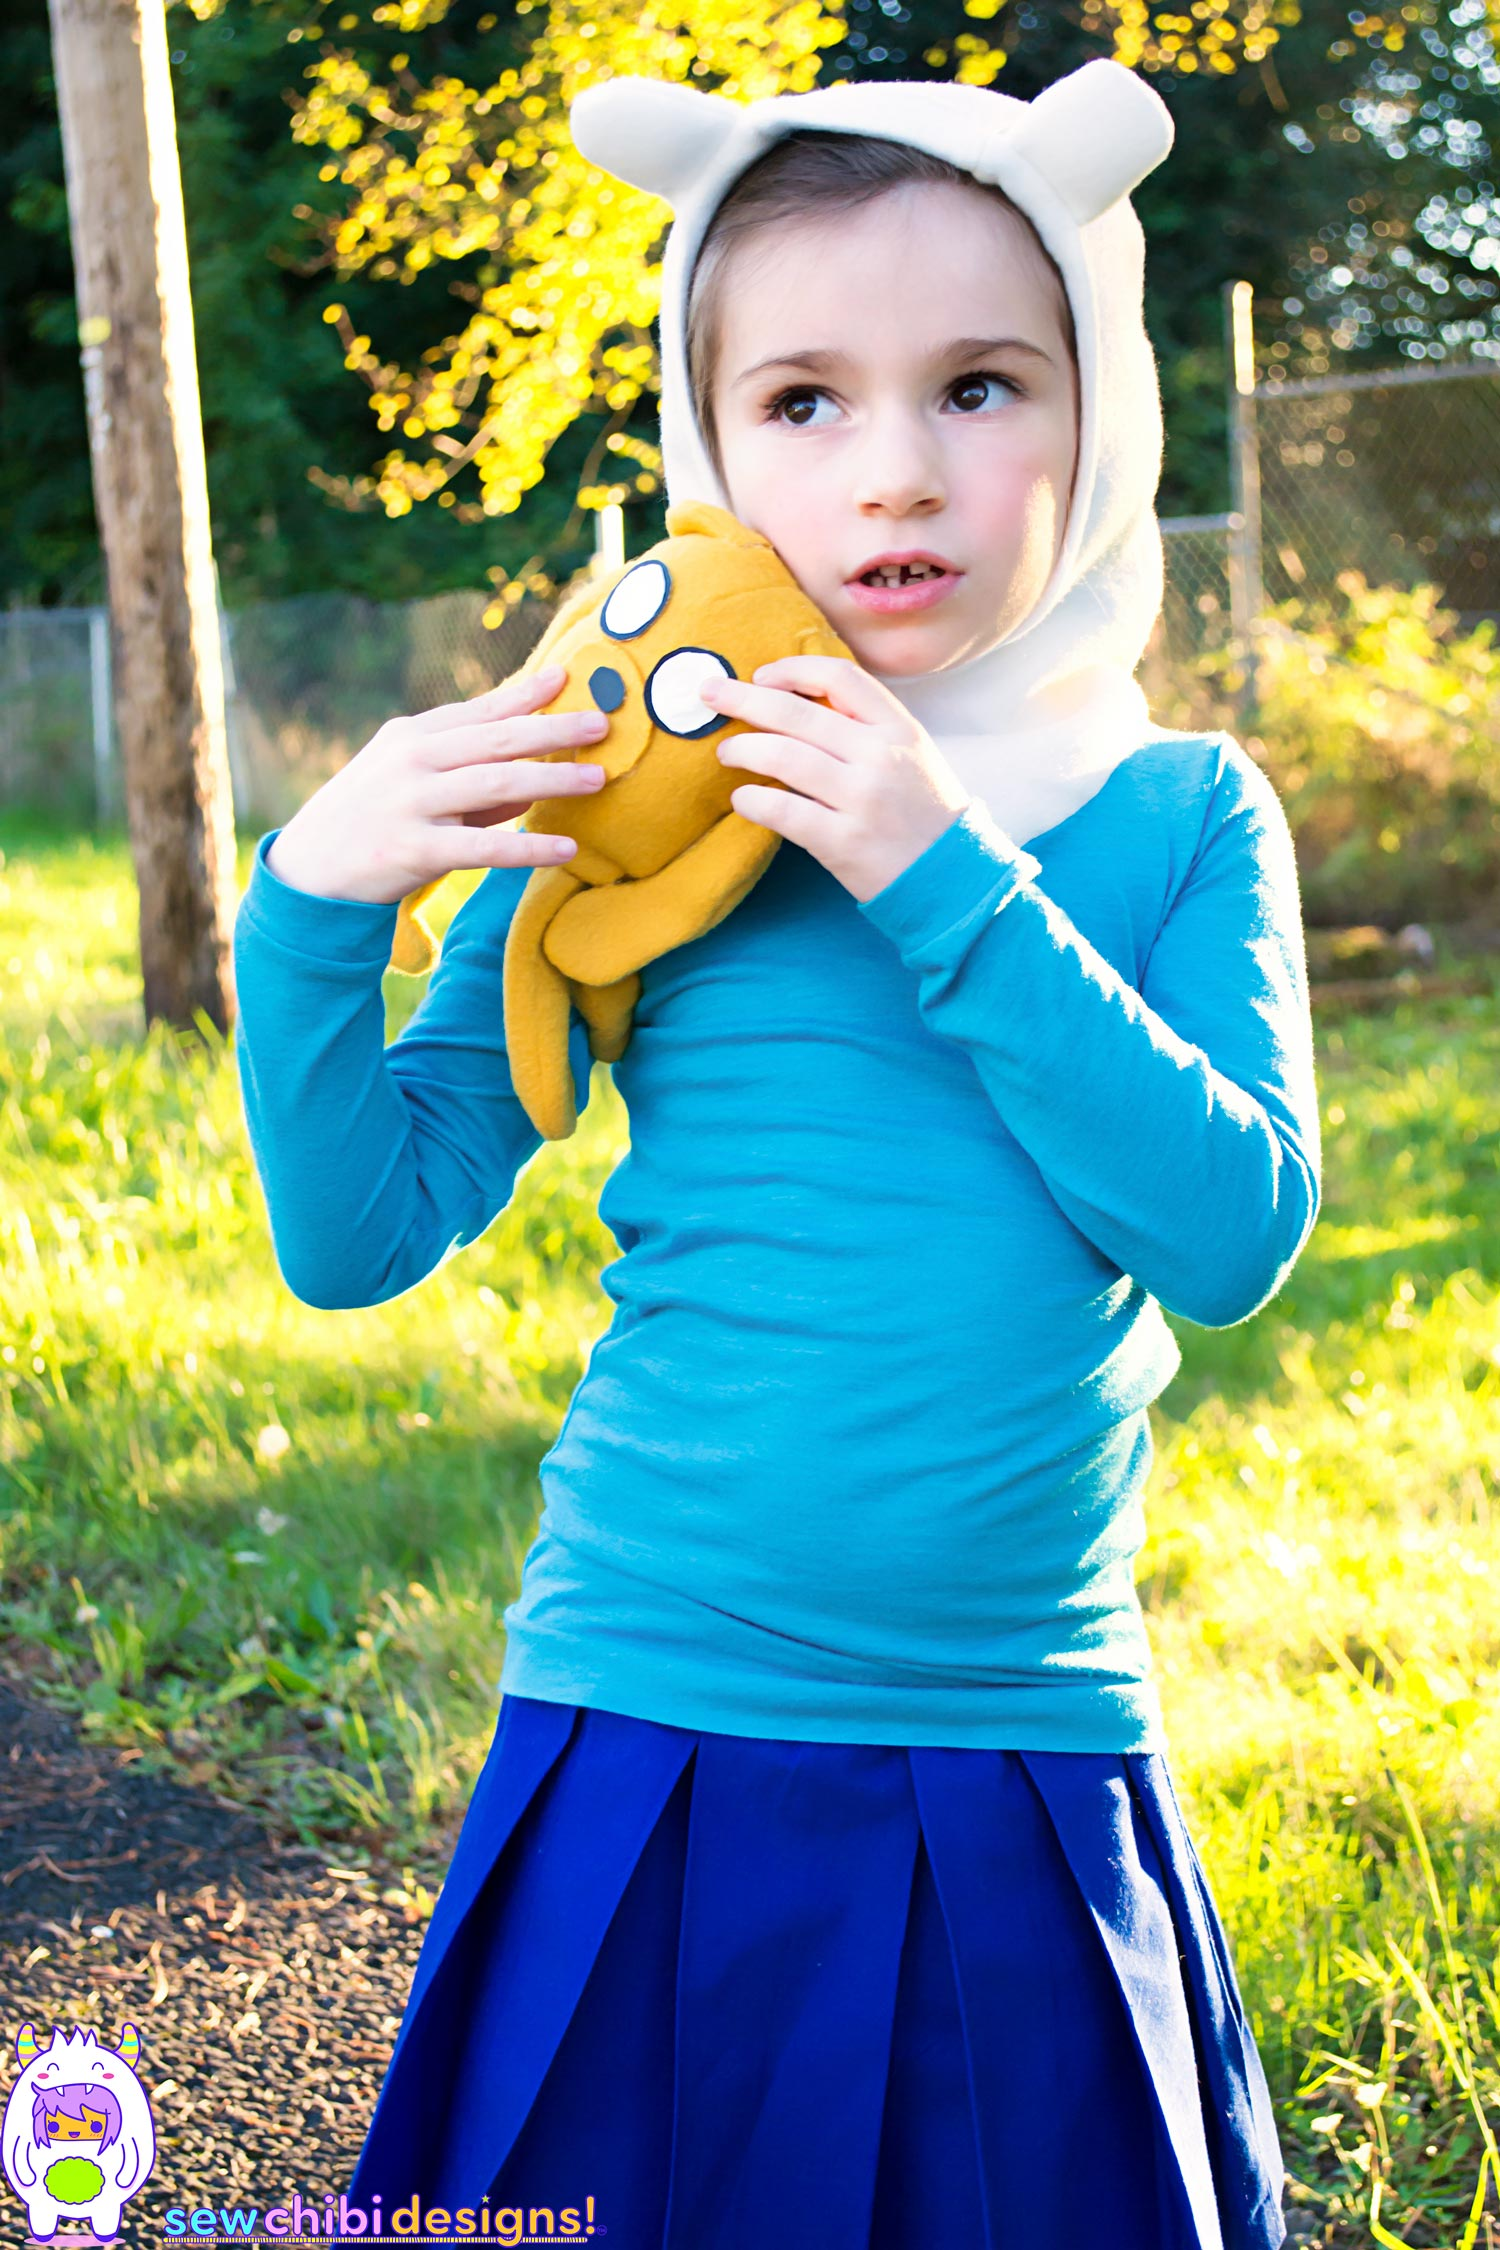 Chibi cosplay of Finn + Jake from Adventure Time sewn by Sew Chibi Designs for Halloween featuring the Bimaa Sweater PDF pattern